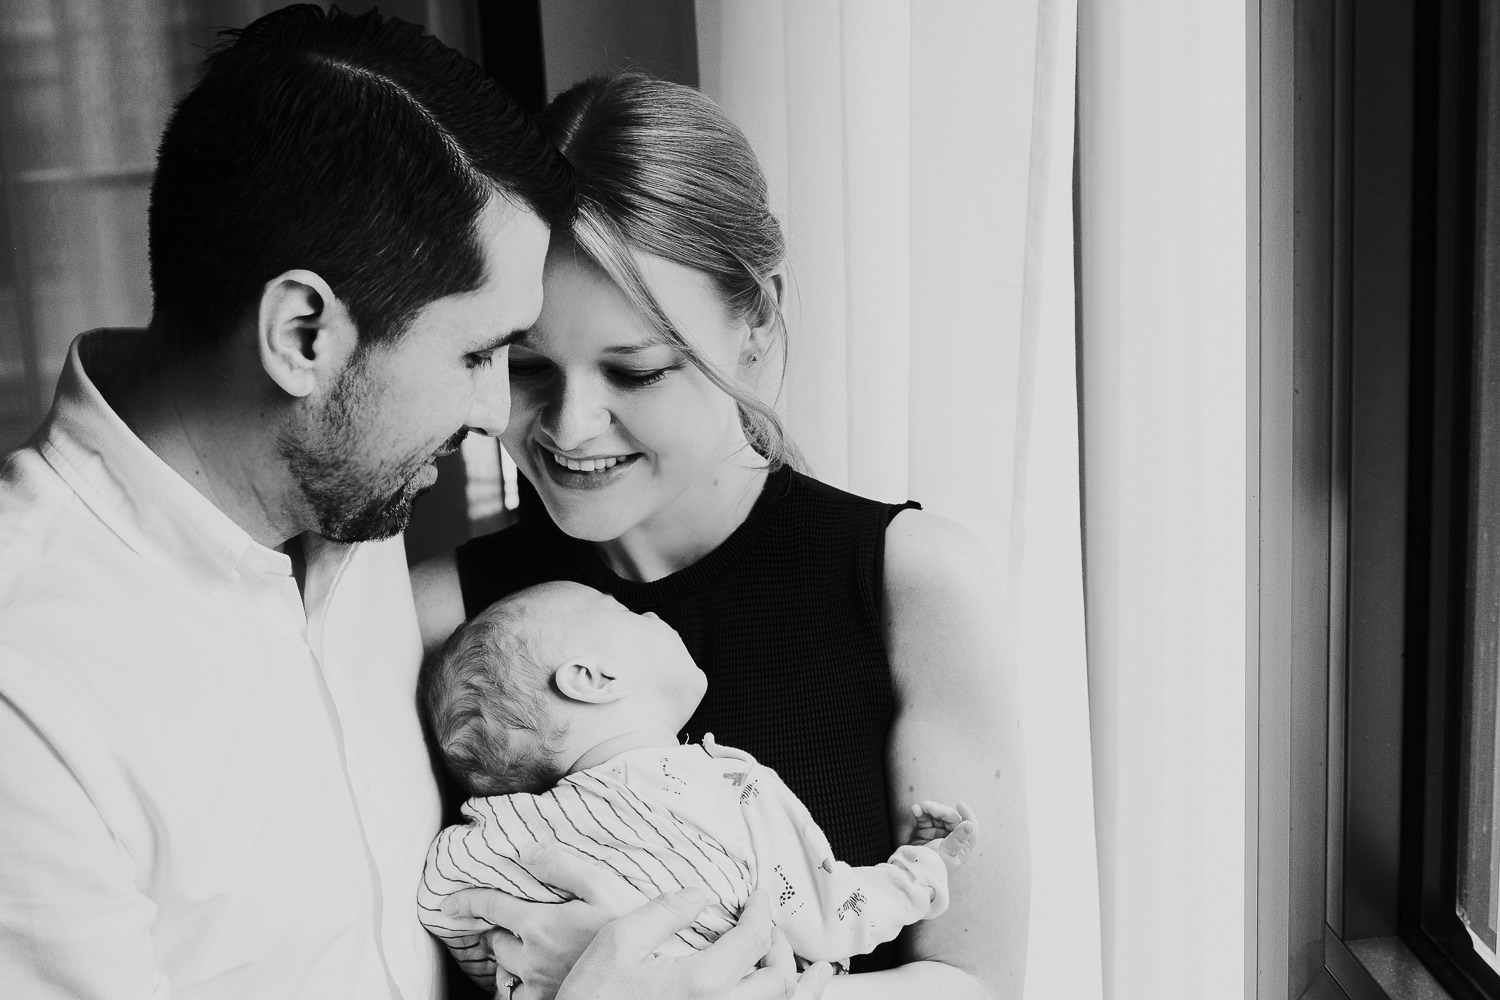 NATURAL LIGHT WINDOW PORTRAIT OF BABY WITH PARENTS BLACK AND WHITE LONDON NEWBORN PHOTOS